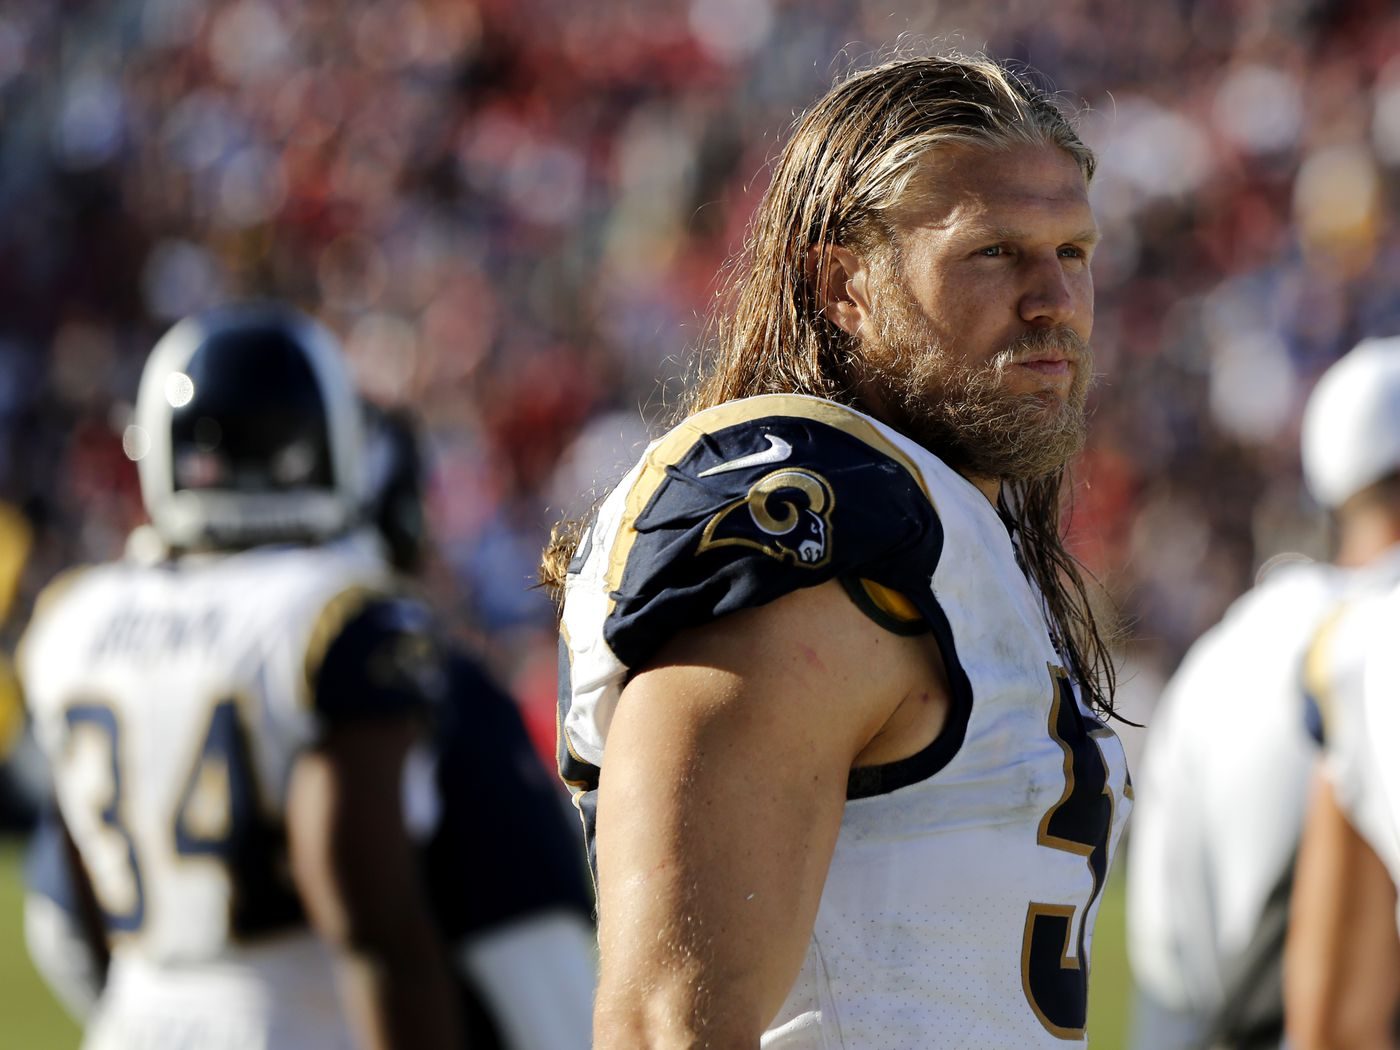 Former Green Bay Packers Star Clay Matthews Fitting In With La Rams Chicago Sun Times